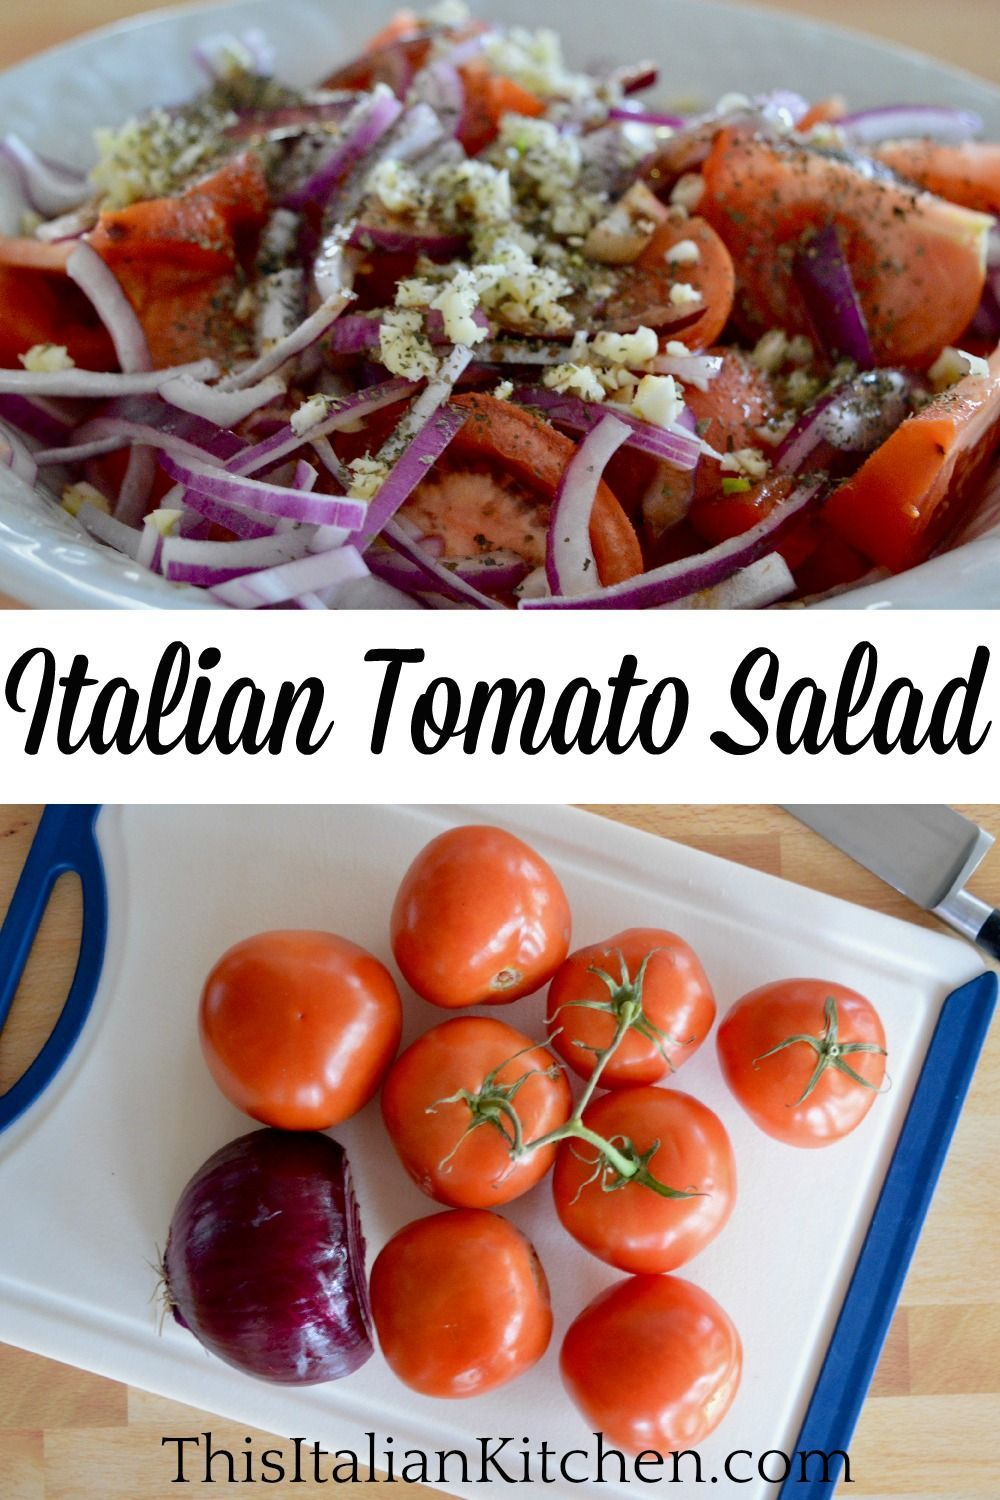 Italian Tomato Onion Salad Balsamic Vinegar This Italian Kitchen Recipe In 2020 Italian Salad Recipes Italian Breakfast Recipes Italian Meat Recipes